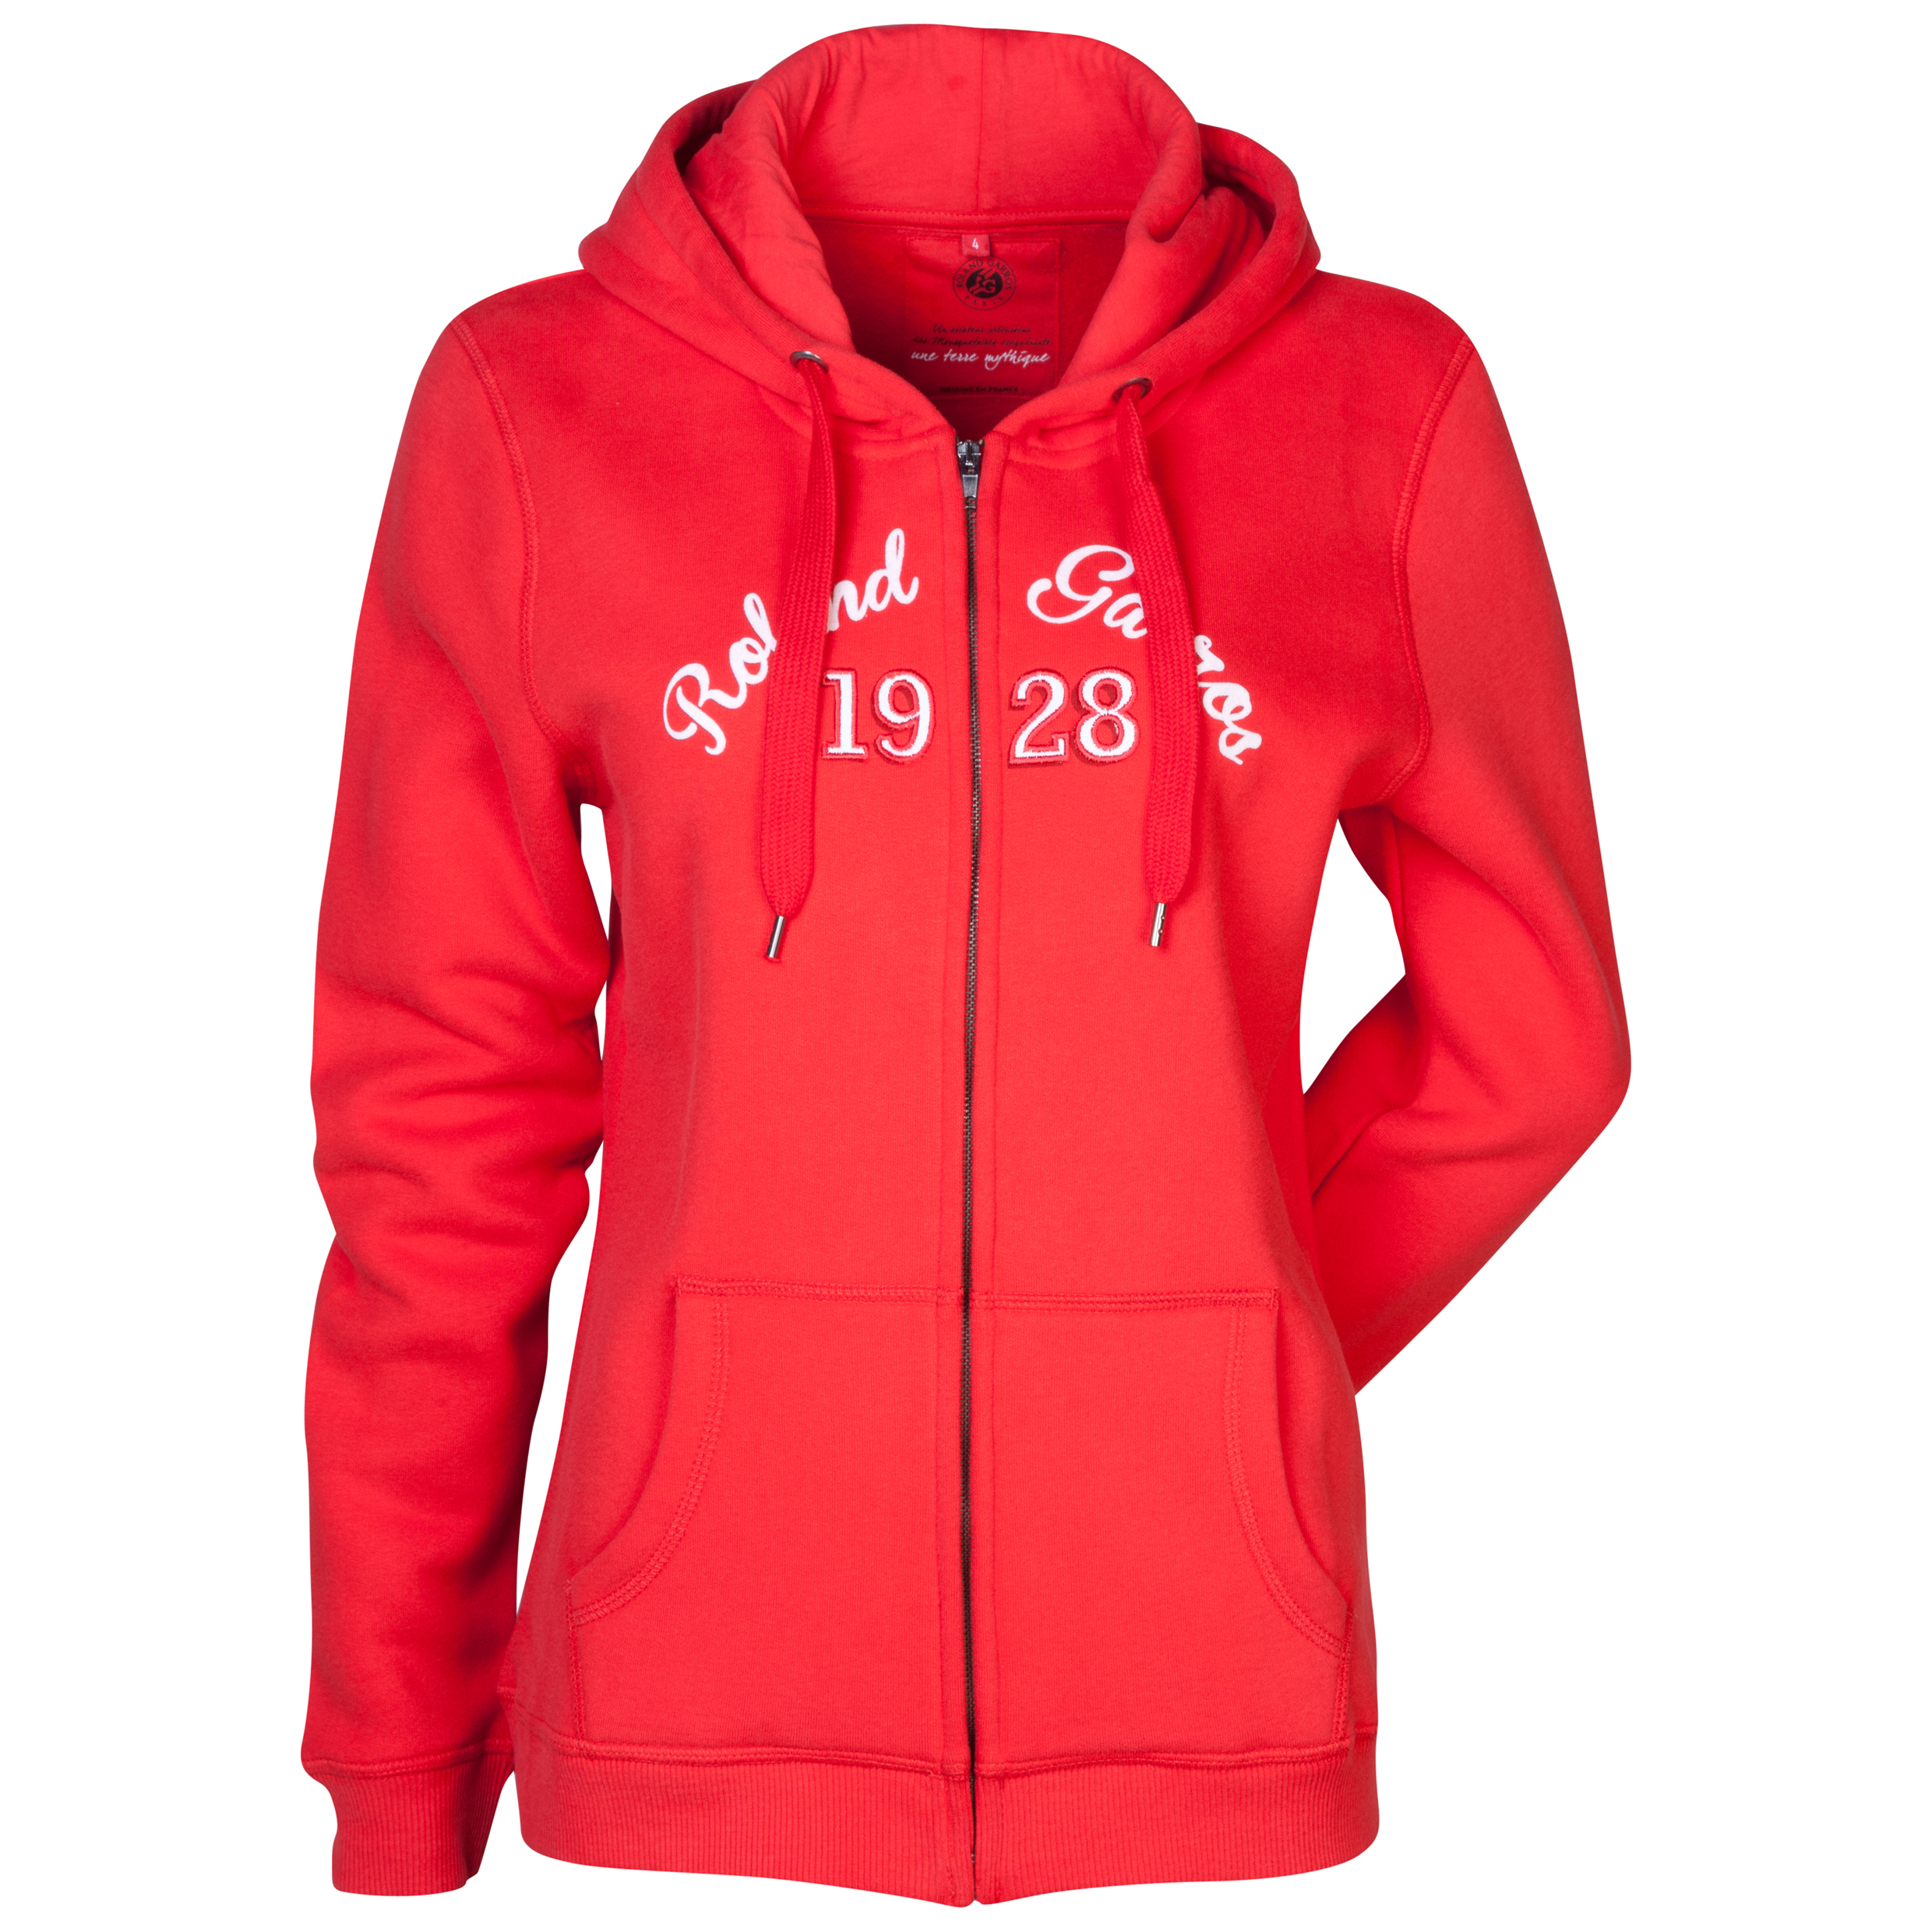 Roland-Garros Barra Hooded Zip Top